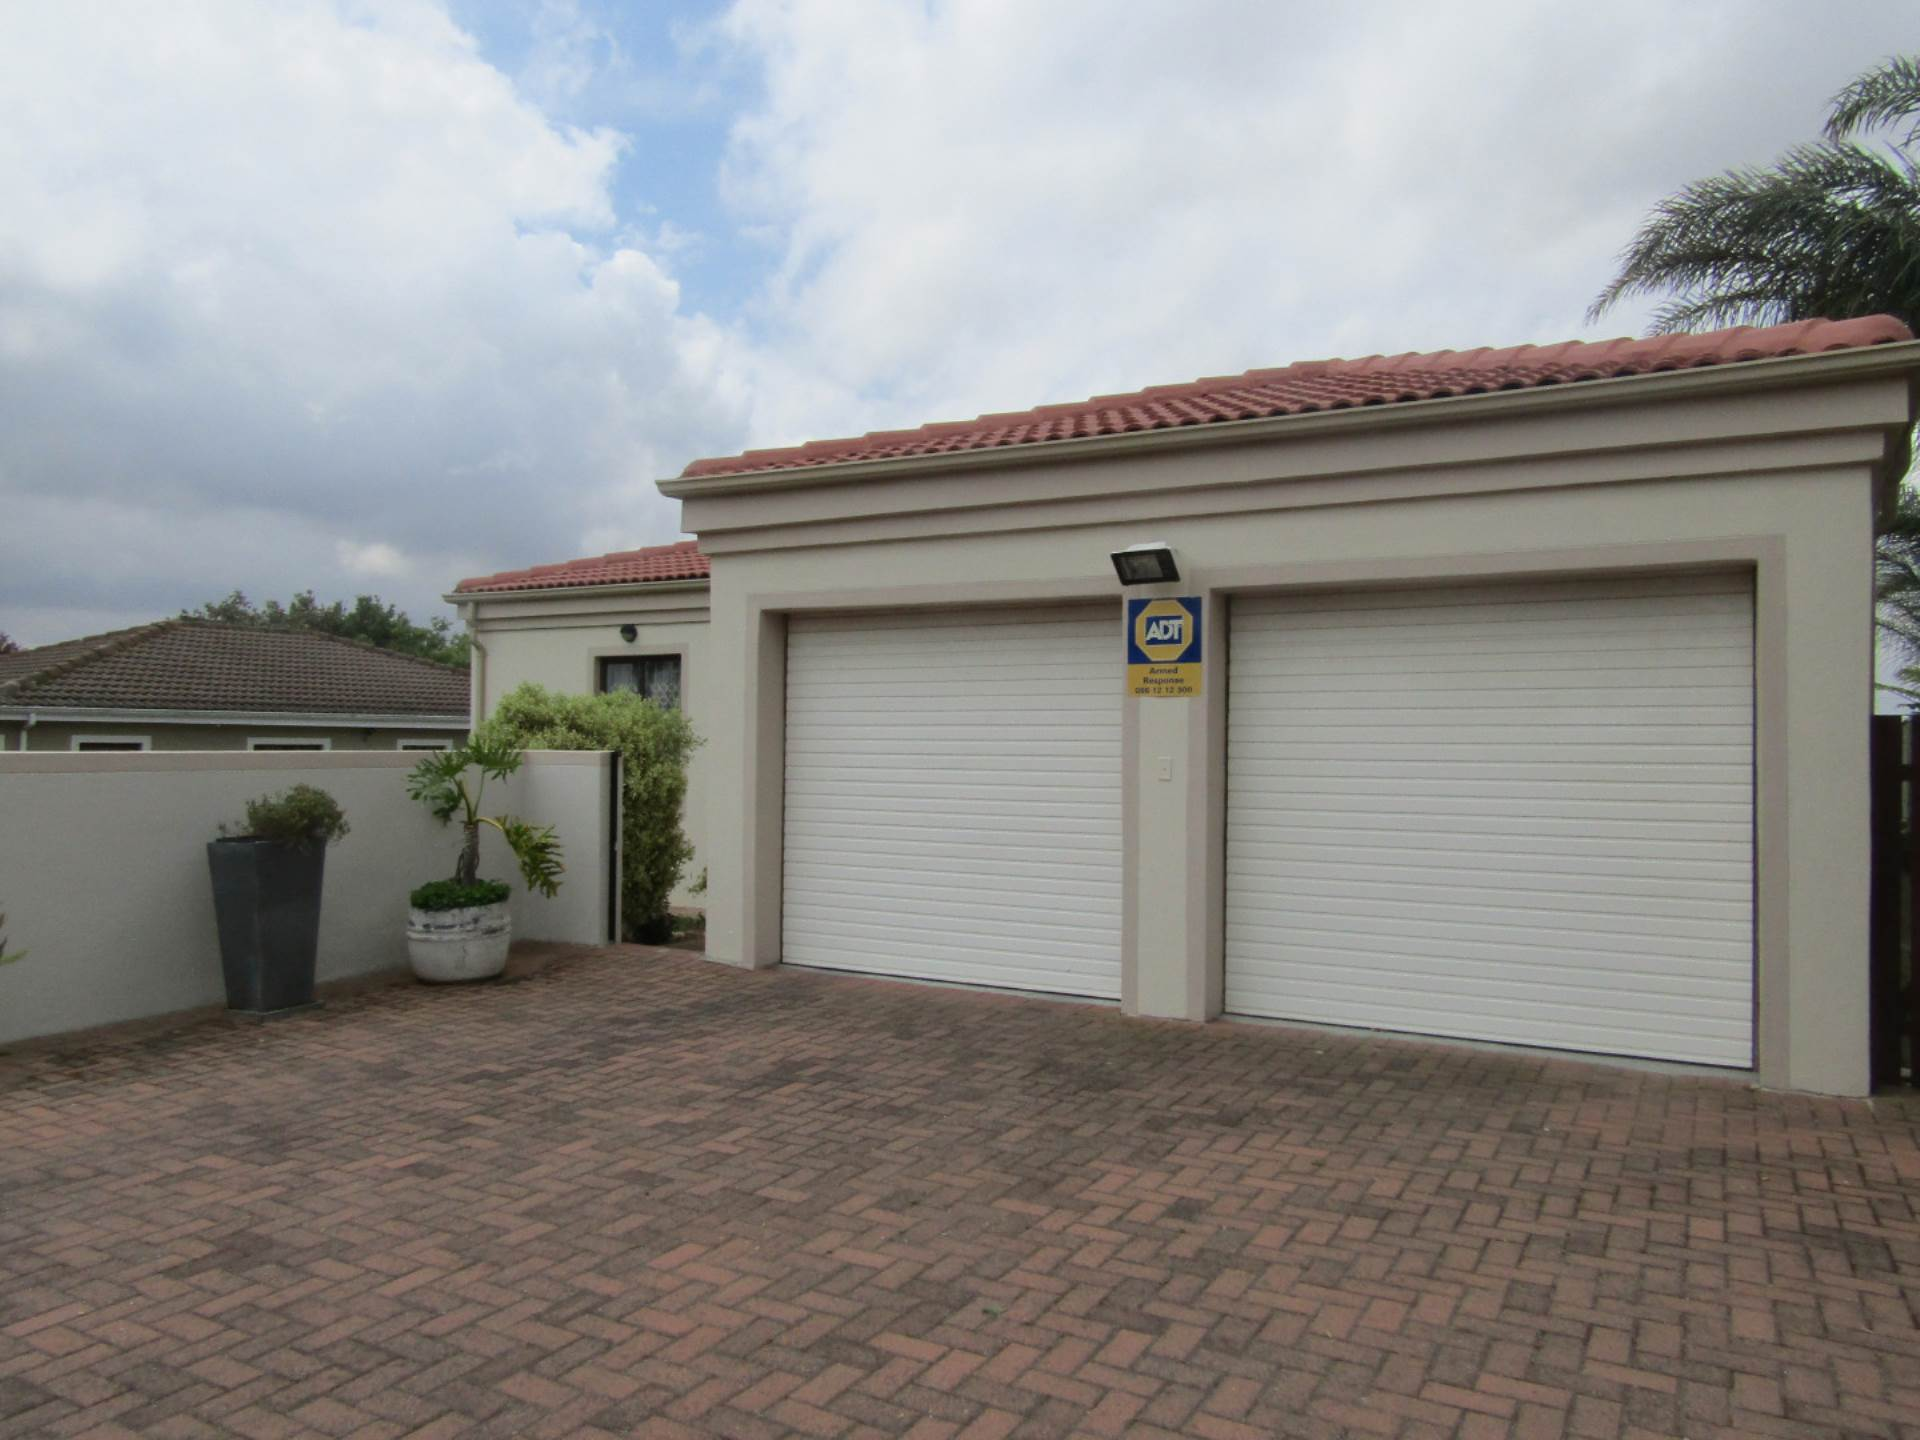 3 BedroomHouse For Sale In Goedemoed